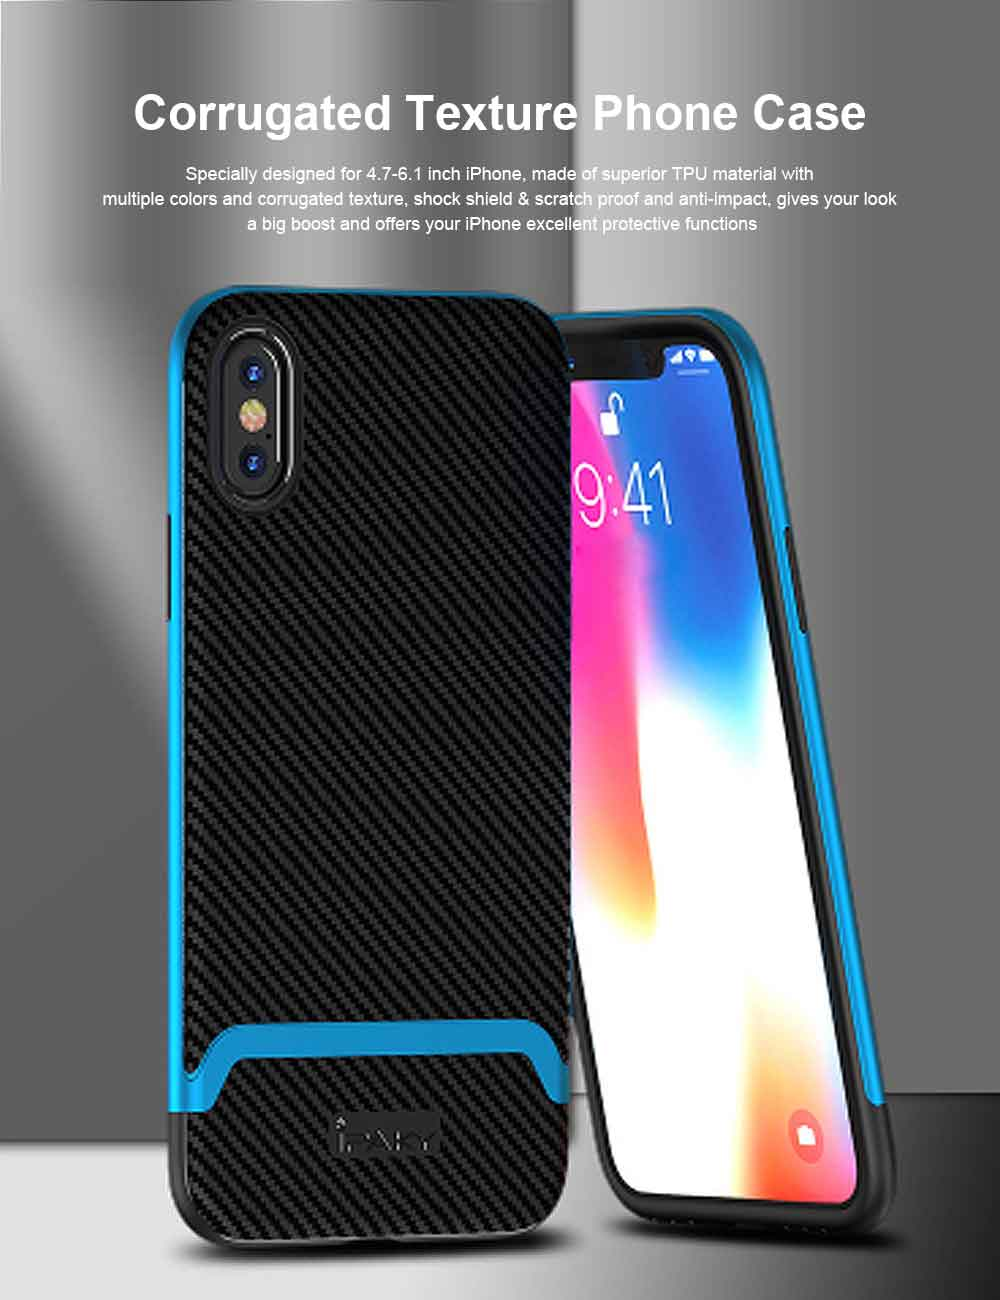 Corrugated Texture Phone Case Compatible for iPhone X/XS/Max, Anti-scratch Protective Cover for Apple iPhone 5.8-6.5 inch Universal Phone Cover 0